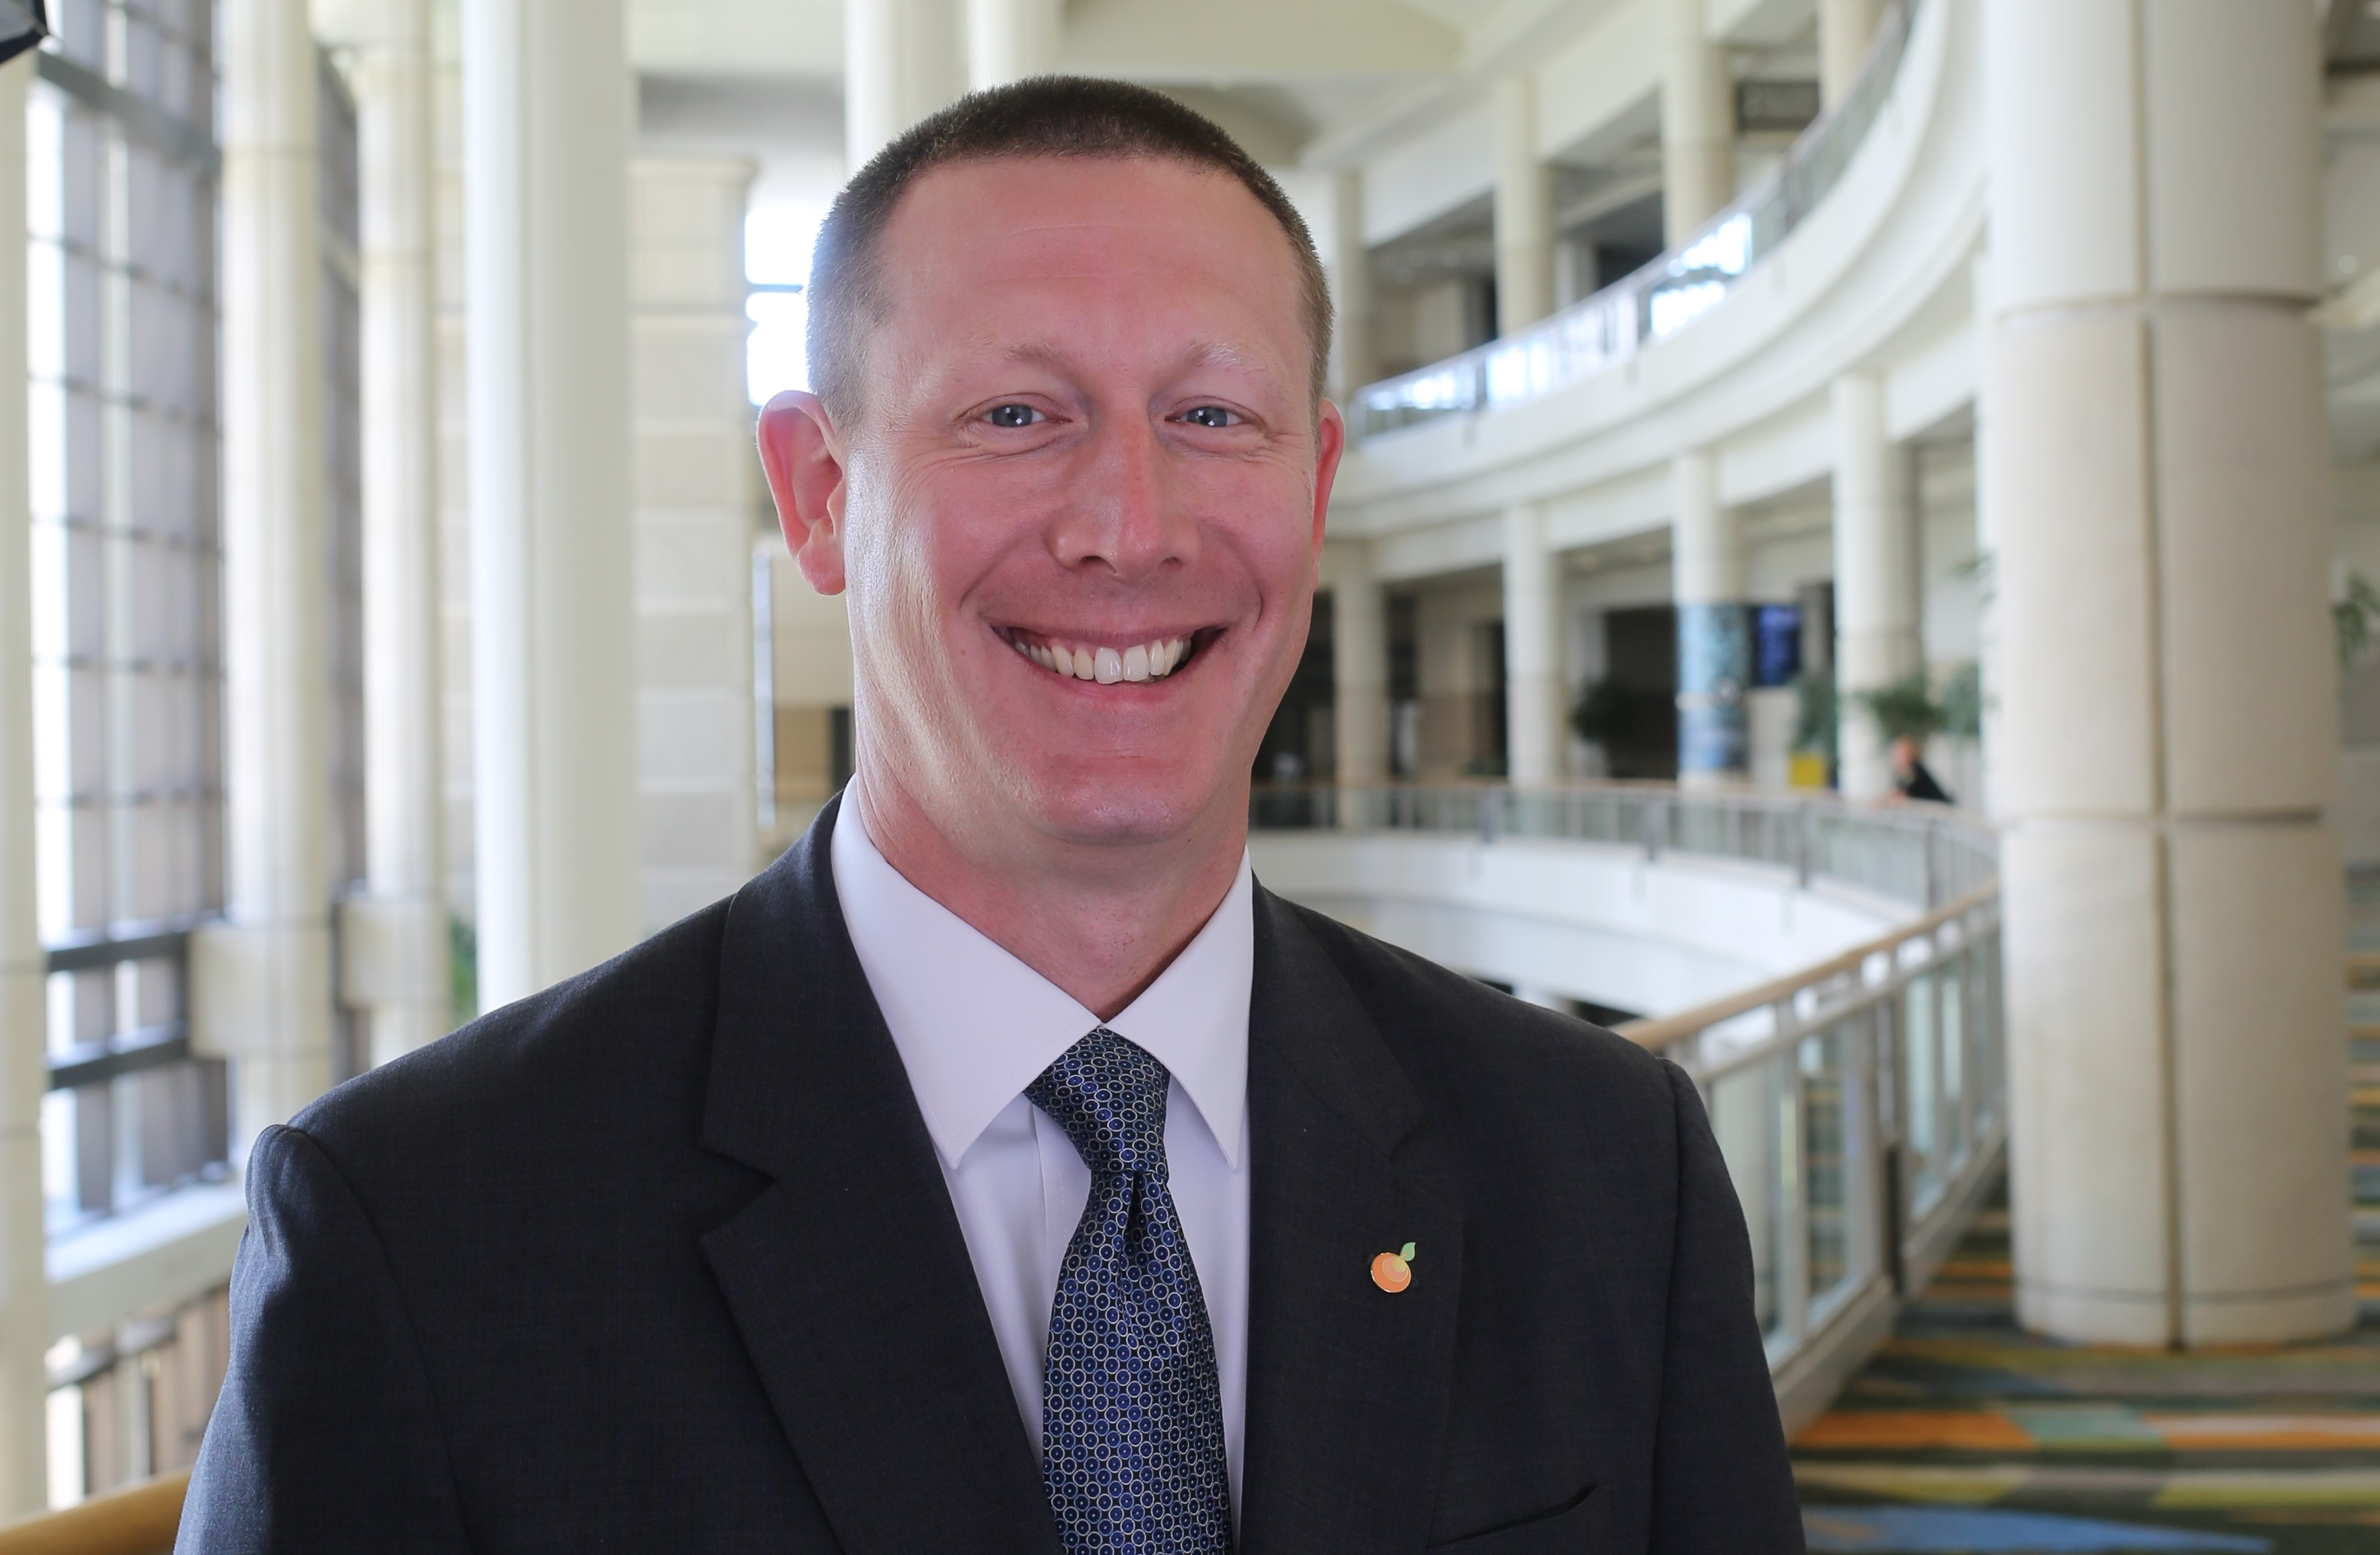 David Ingram Appointed Acting Executive Director of Orange County Convention Center